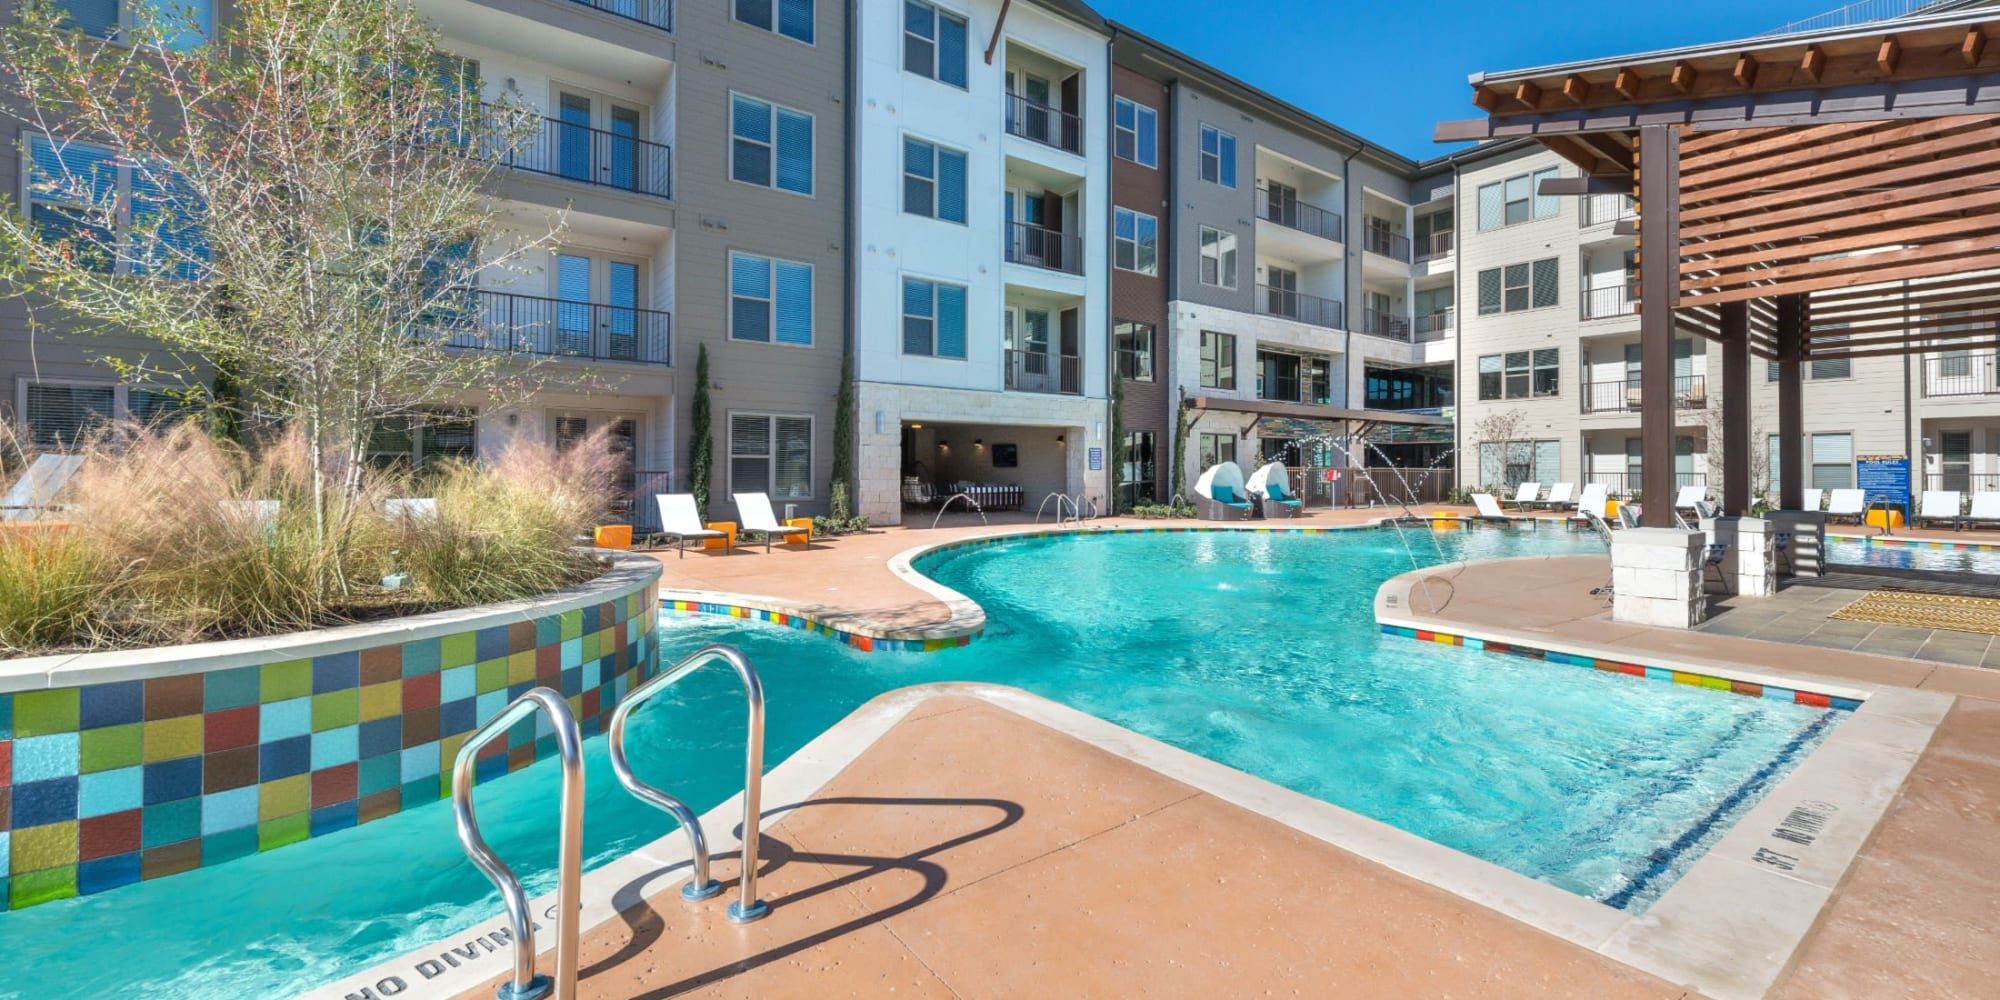 Mercantile River District Apartments in Fort Worth, Texas